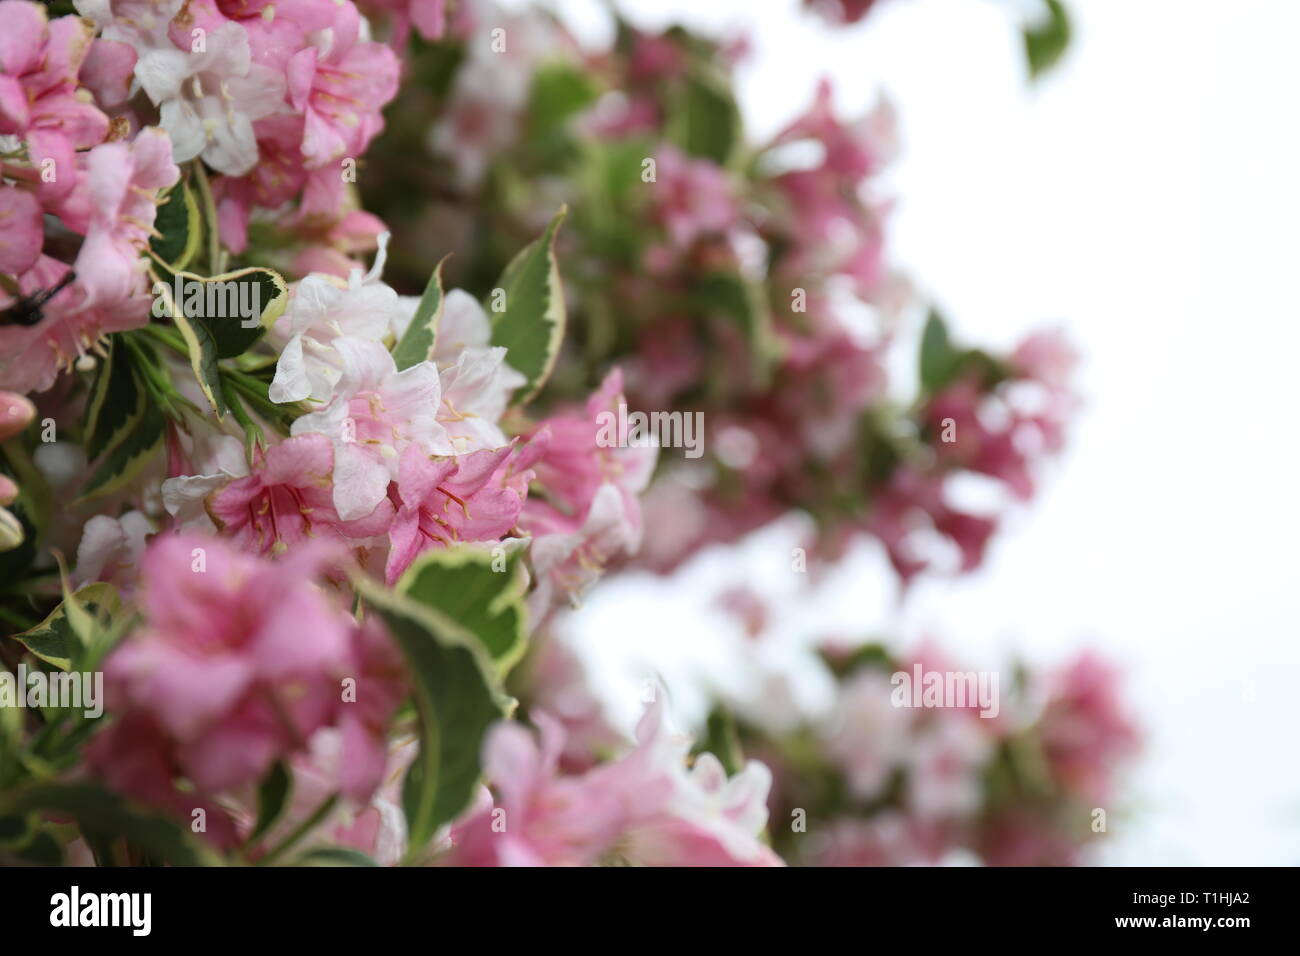 White And Pink Flowers Bush With Green And White Edges Stock Photo Alamy